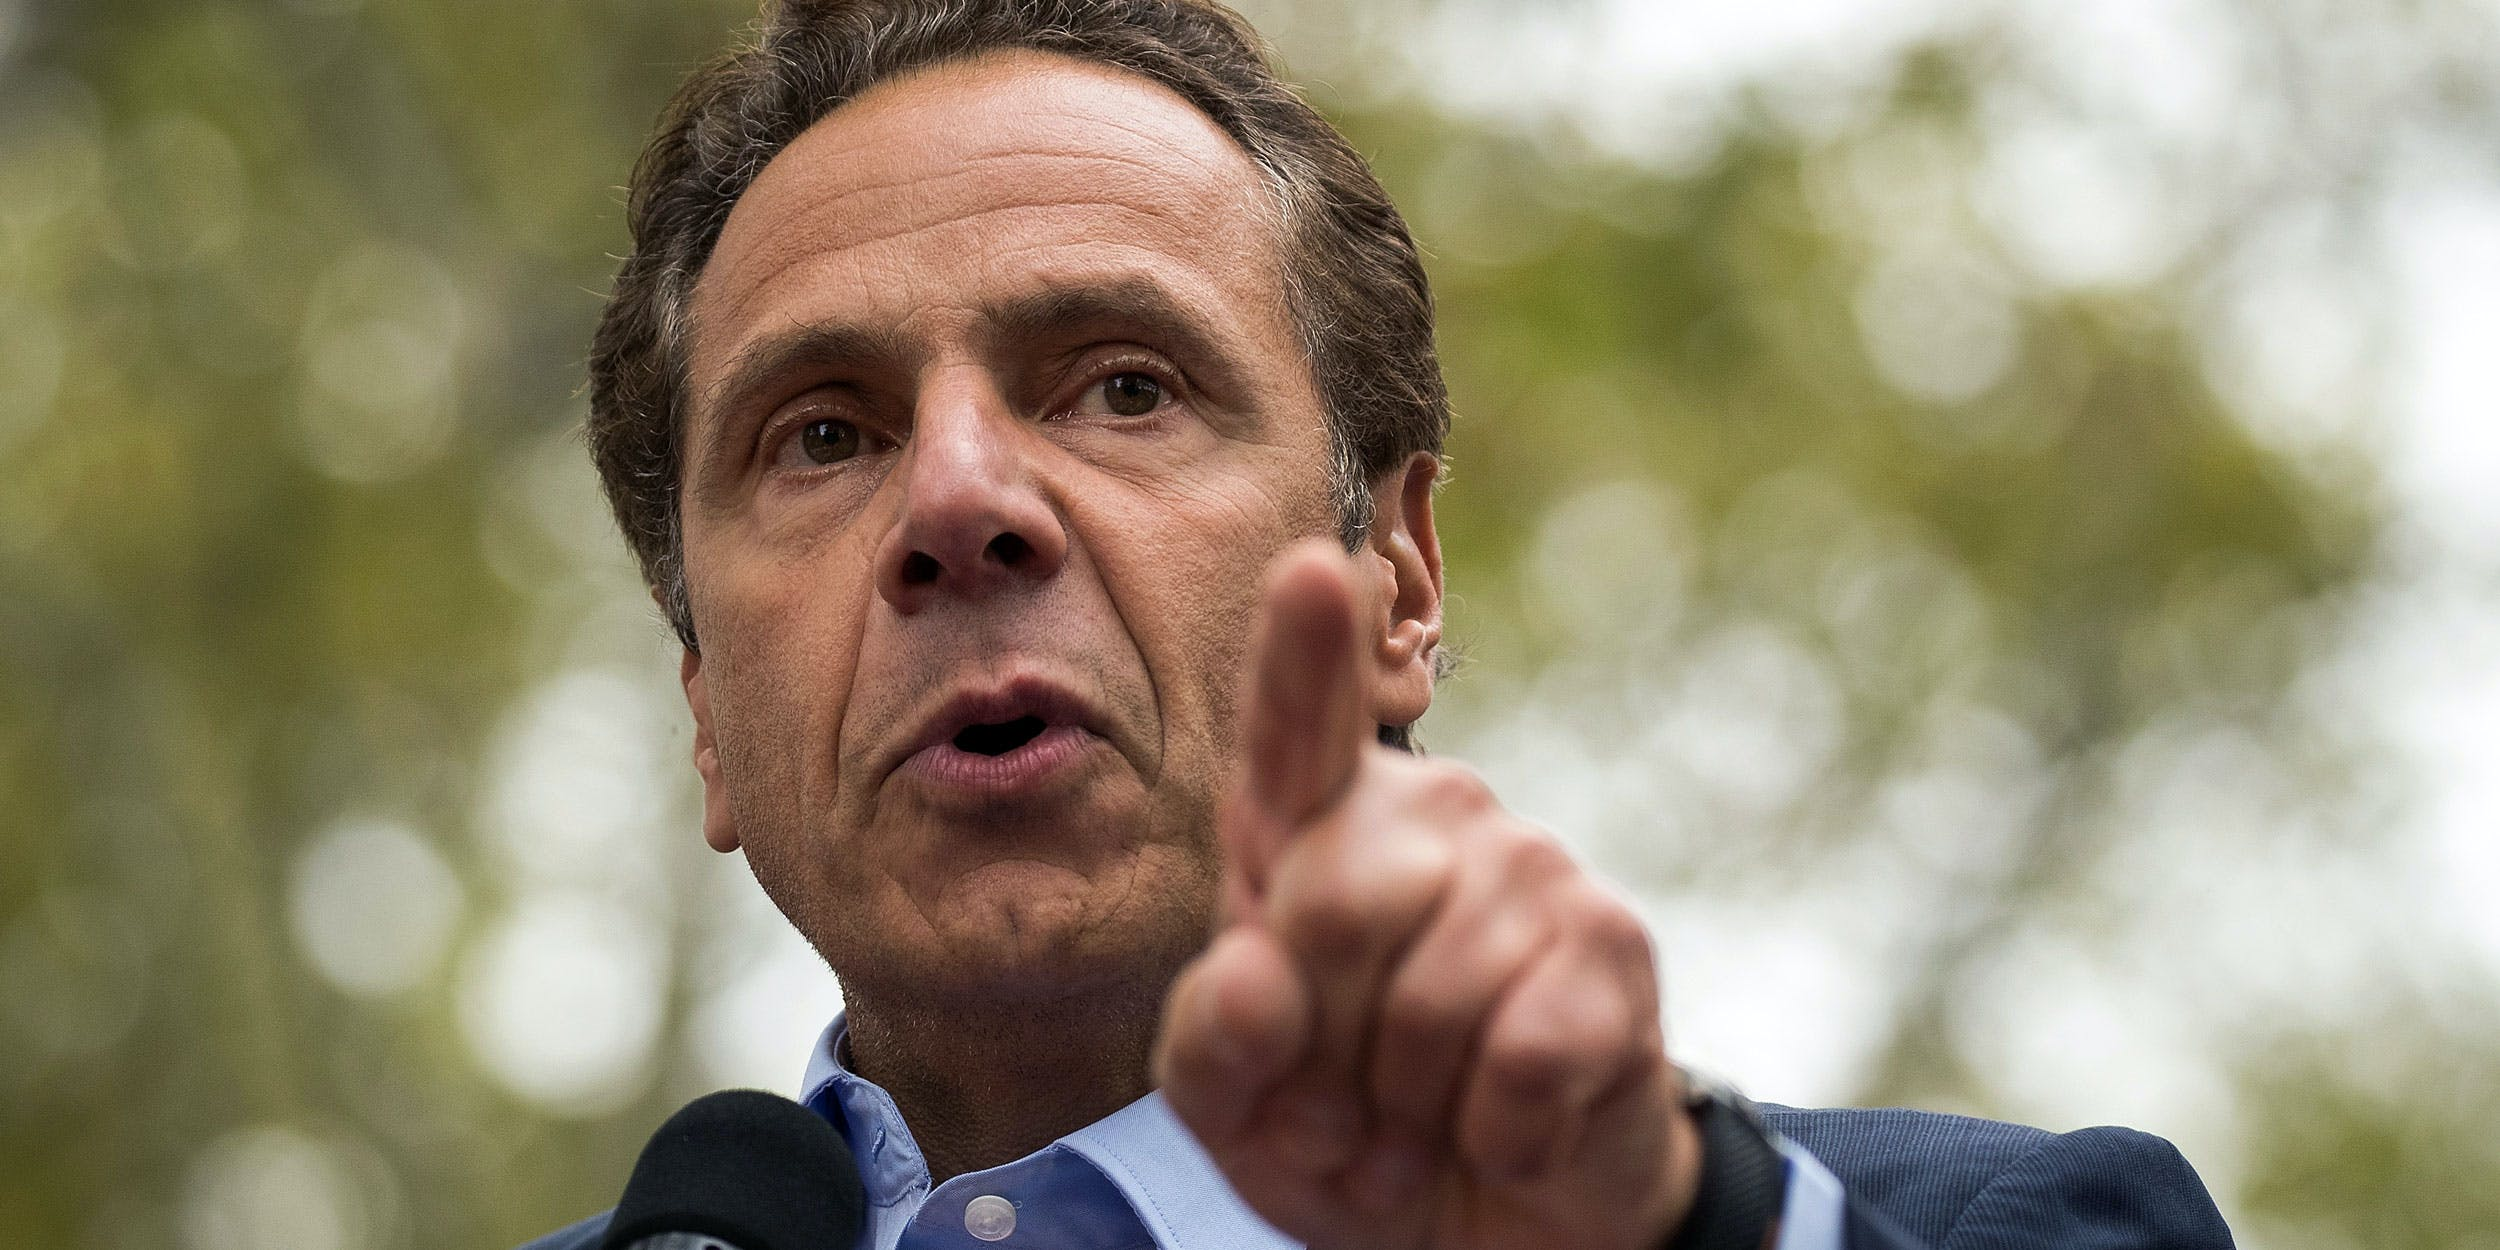 New York's Democratic Party To Add Cannabis Legalization To Its Platform